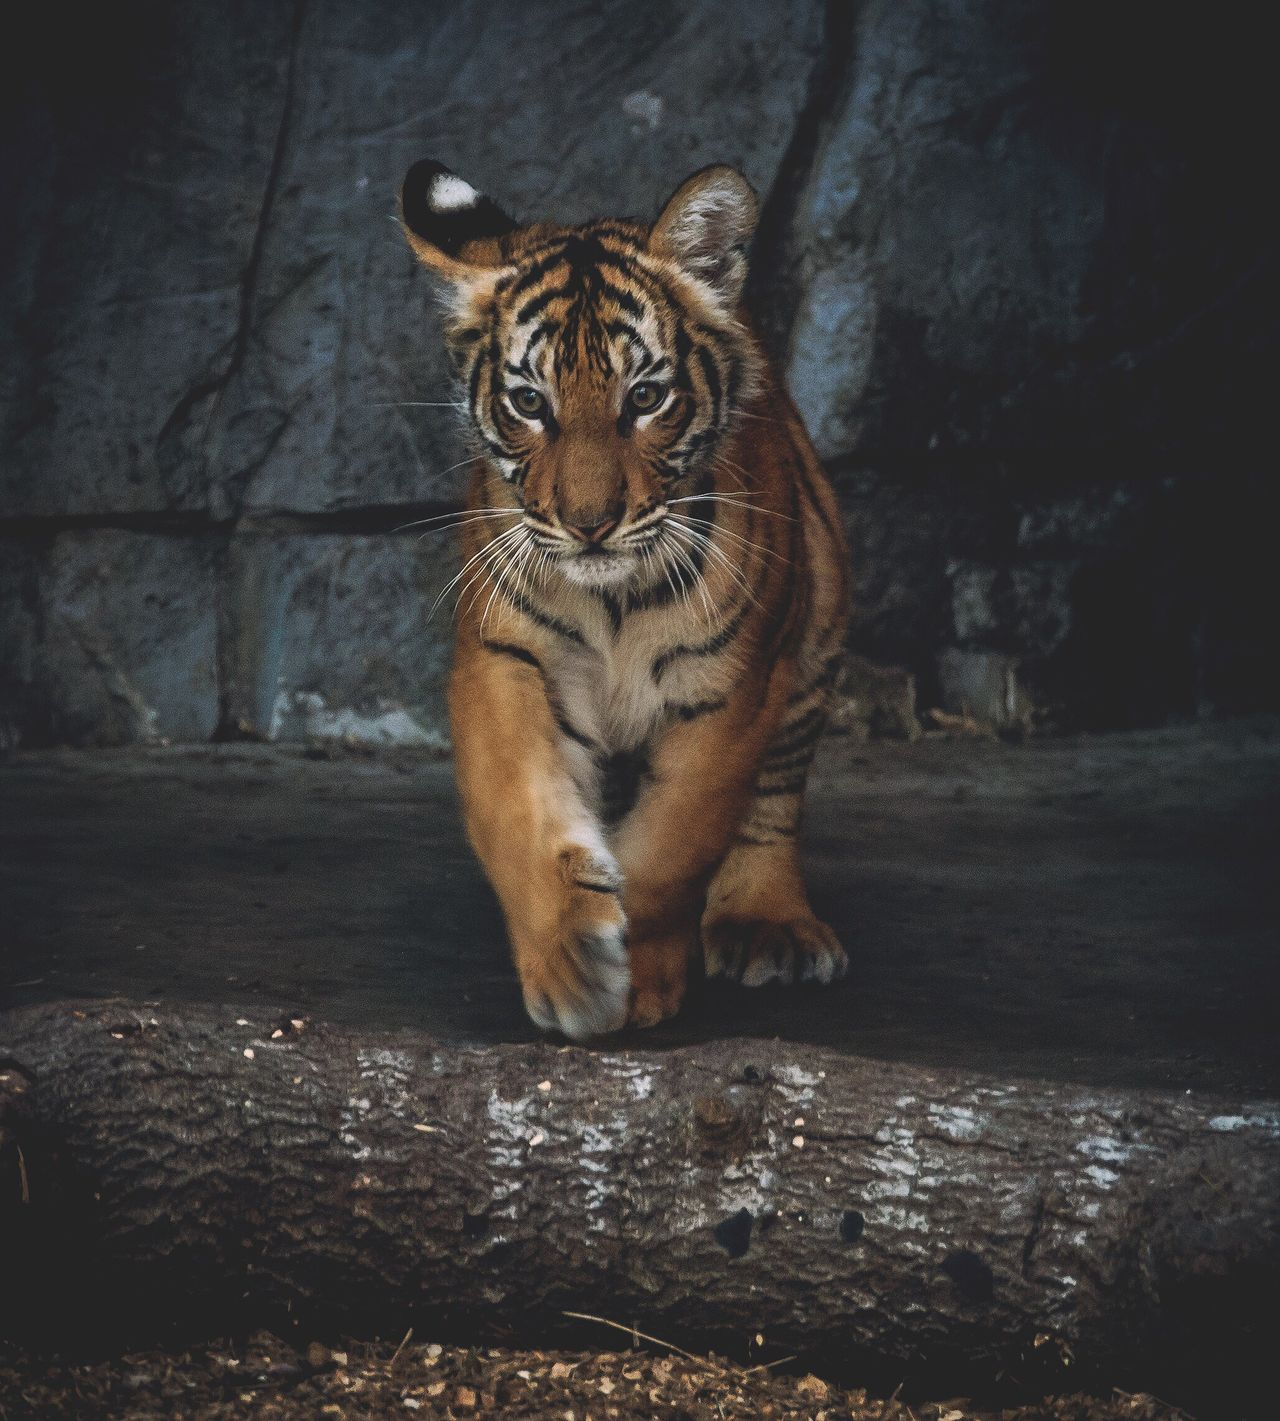 Animal Themes One Animal Mammal Animals In The Wild Feline No People Tiger Carnivora Day Outdoors Portrait Portraits Portrait Photography